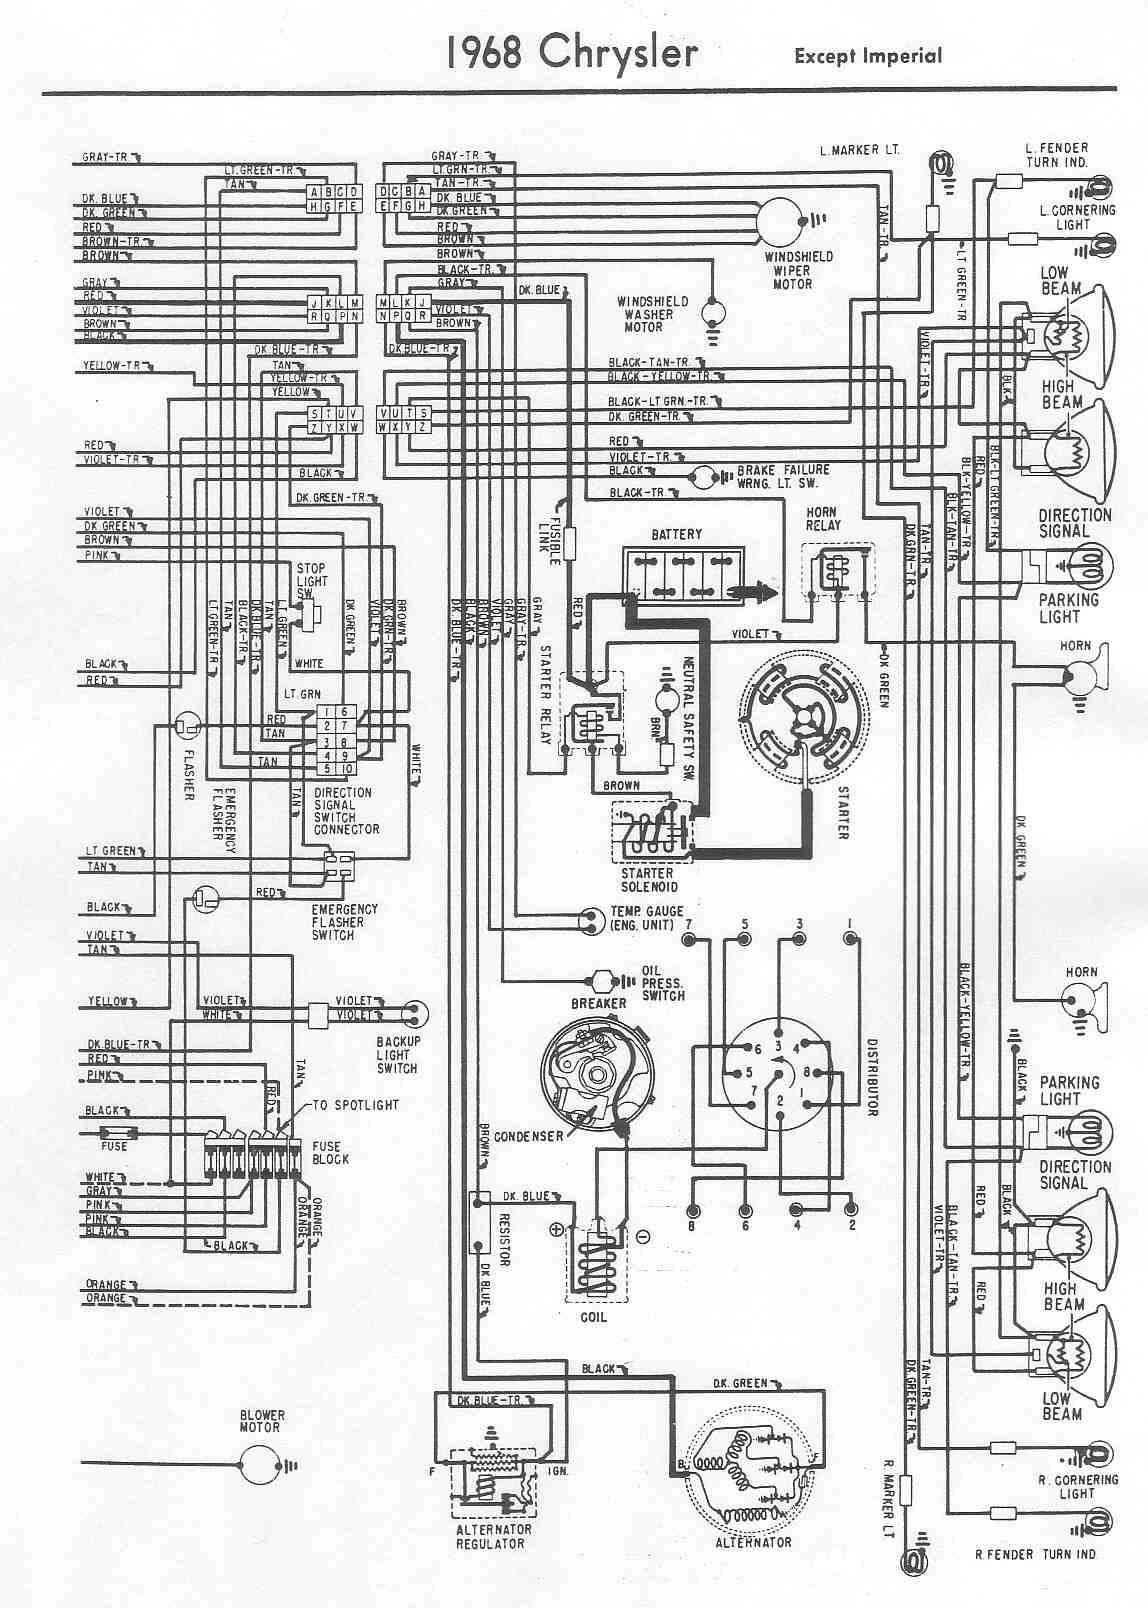 1967 Chrysler Newport Wiring Diagram - DIY Wiring Diagrams •